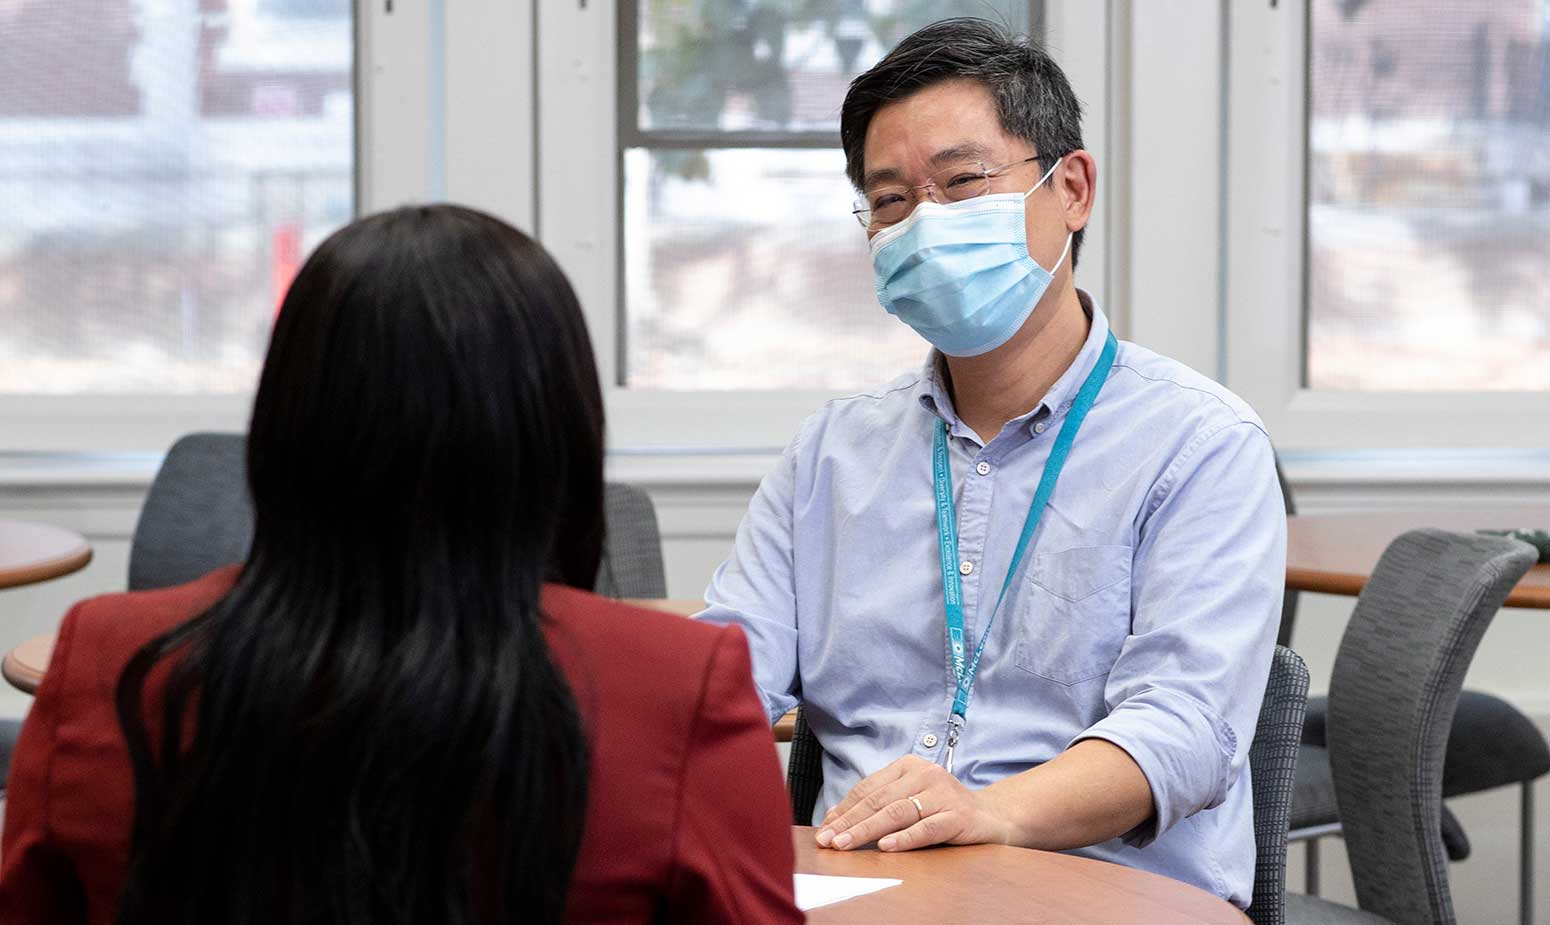 Psychiatrist in face mask talks to patient